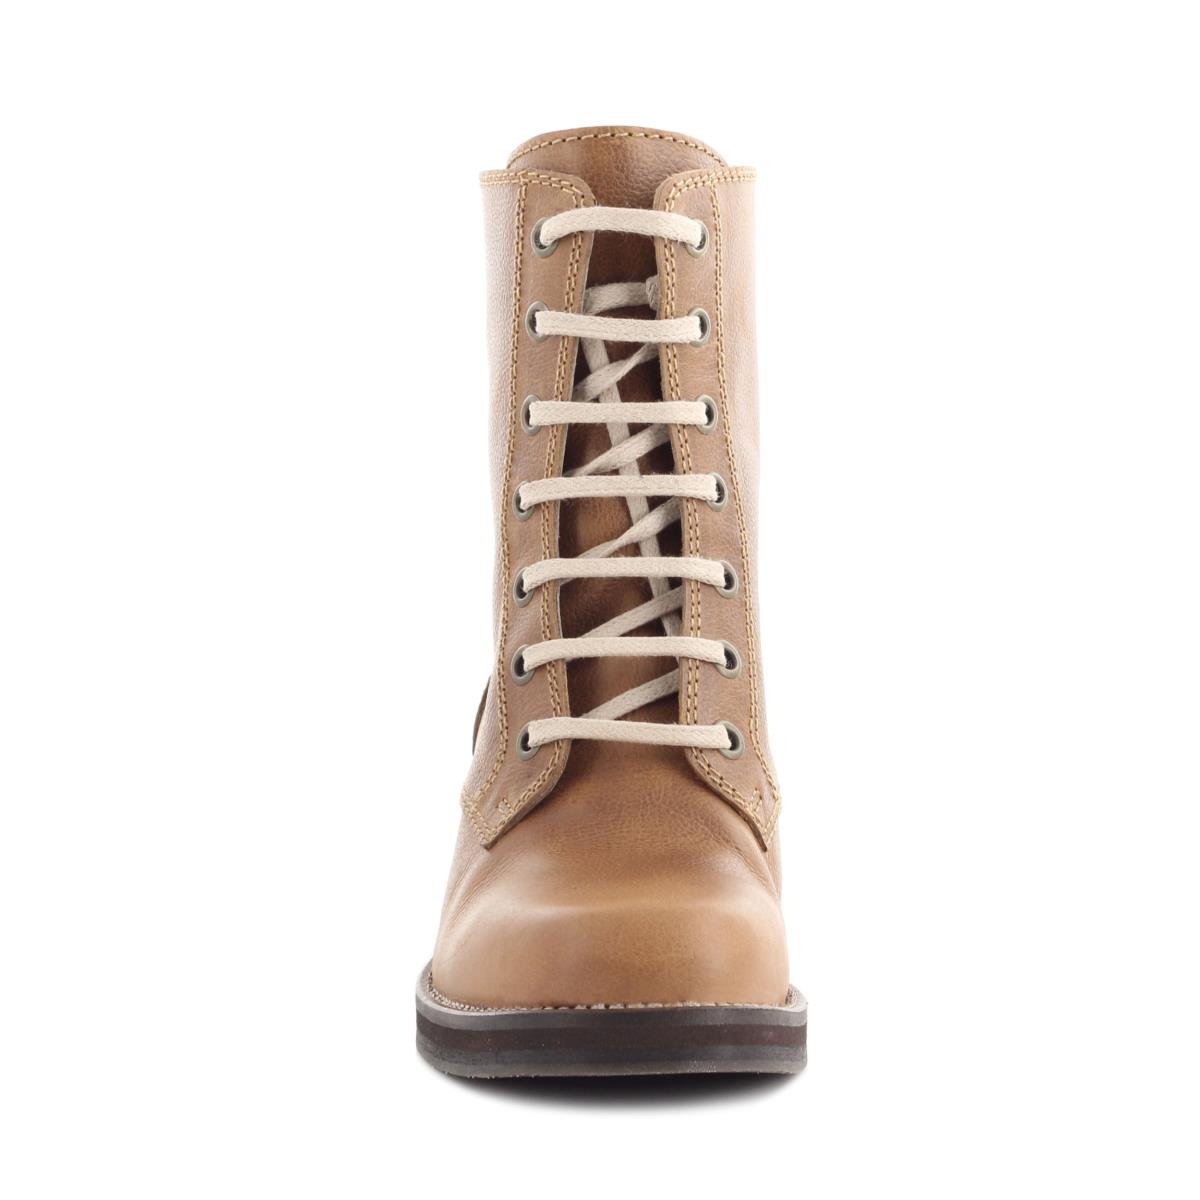 BOTA SCHUTZ S2068900020002 BLACK/NATURAL